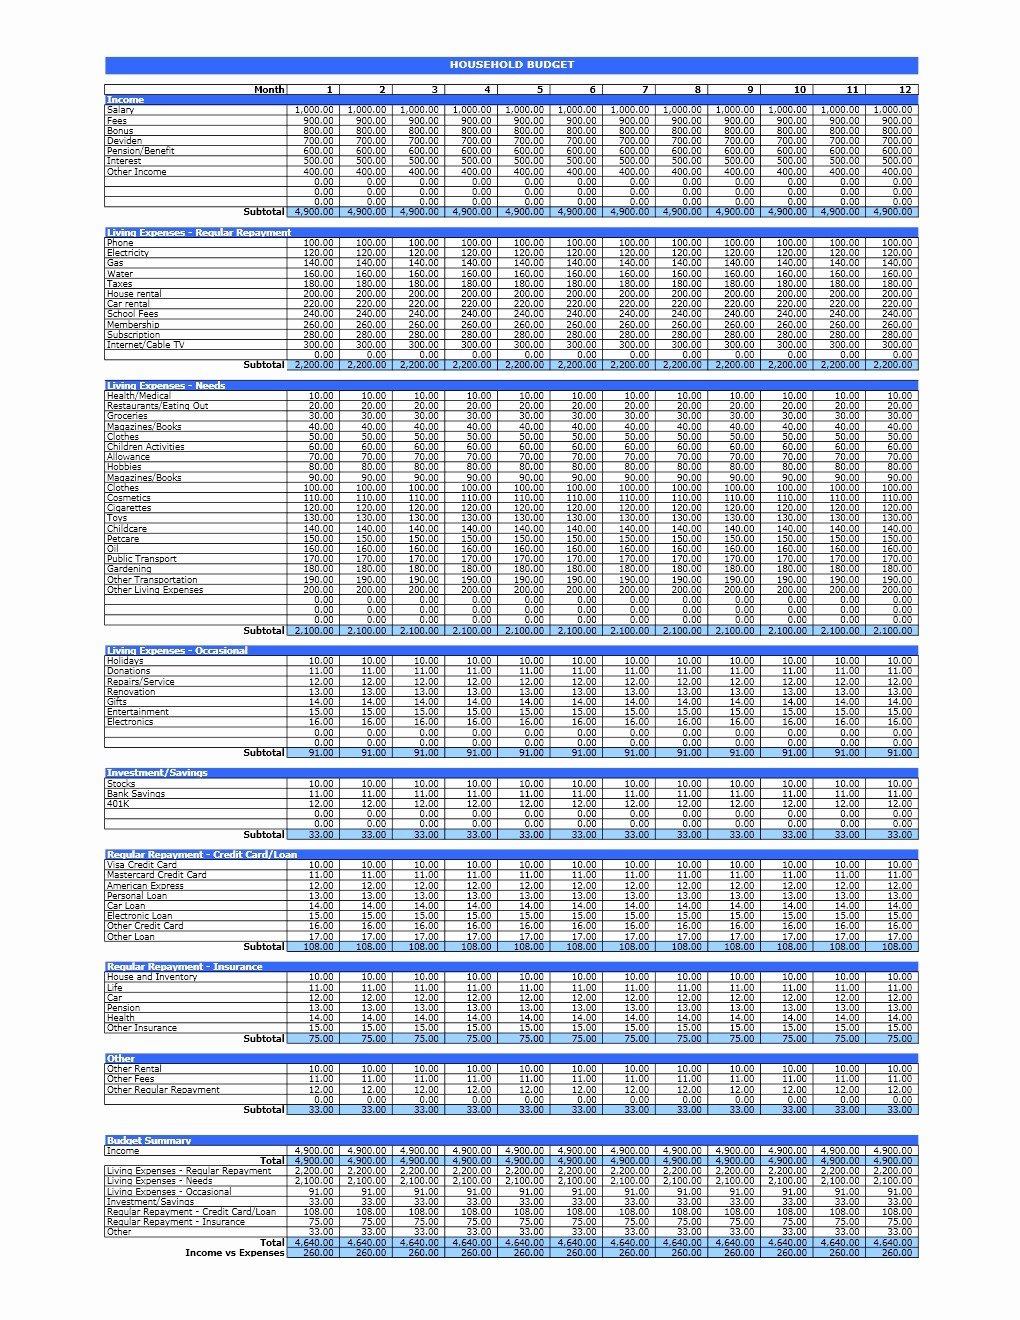 Household Budget Spreadsheet Template Free Best Of Household Bud